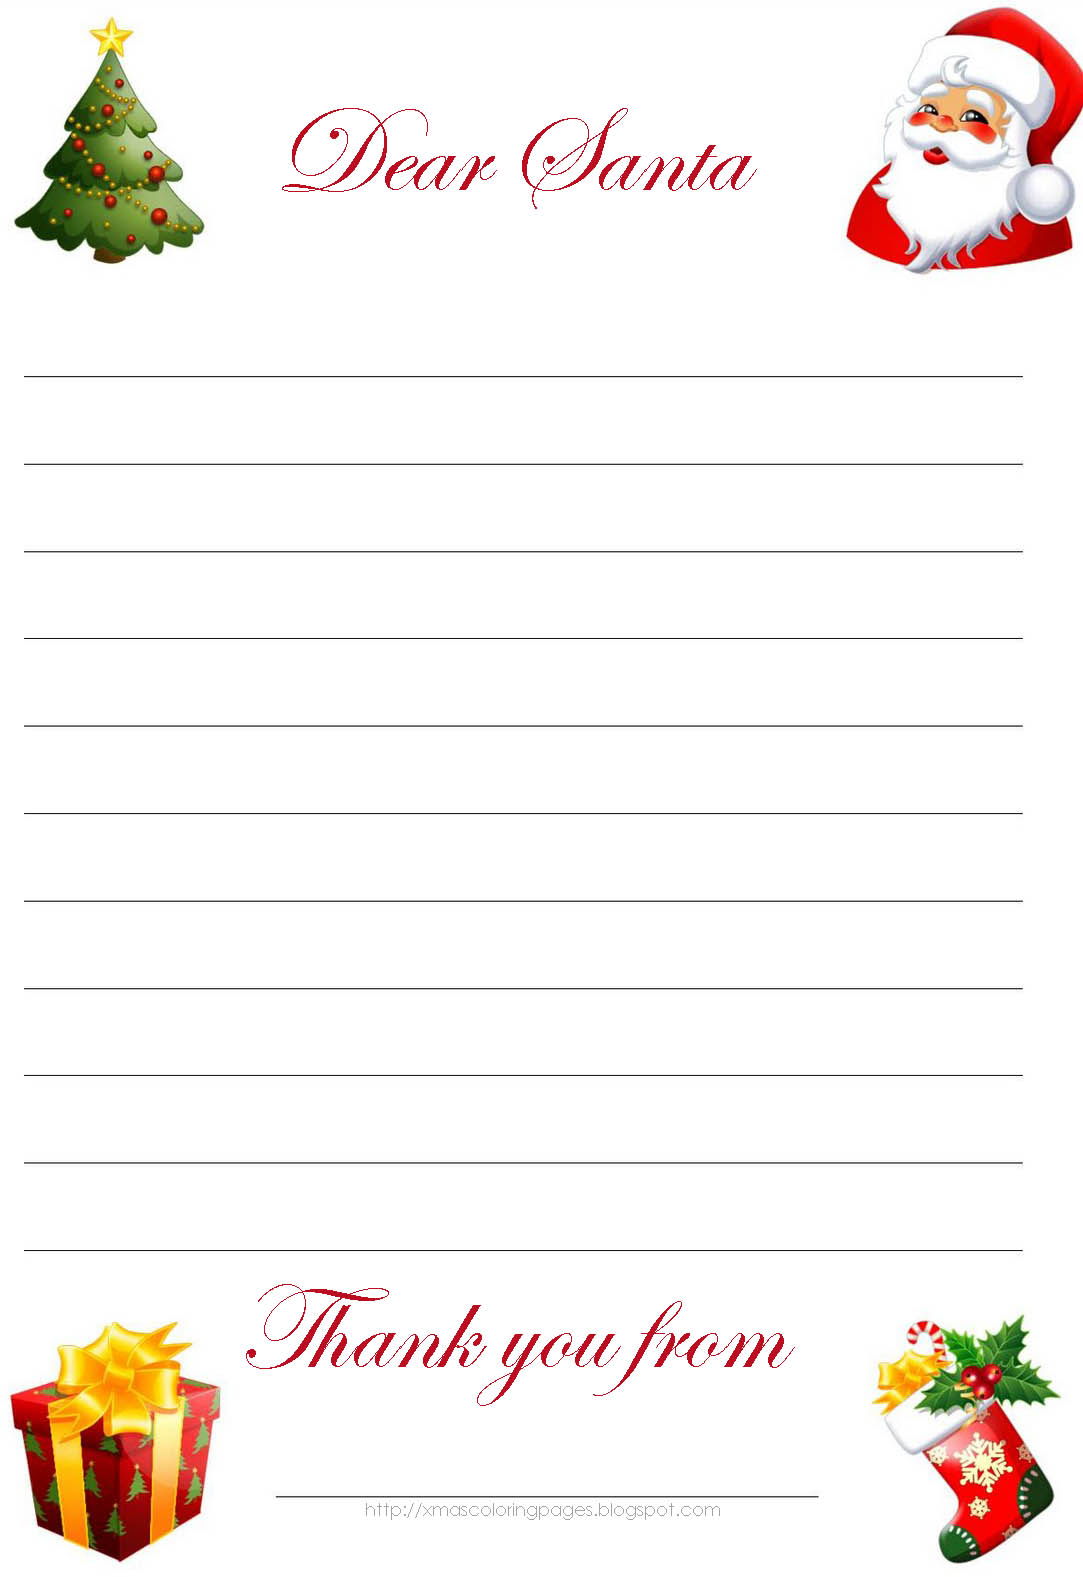 Personalized santa letter banner comp write a letter to santa.